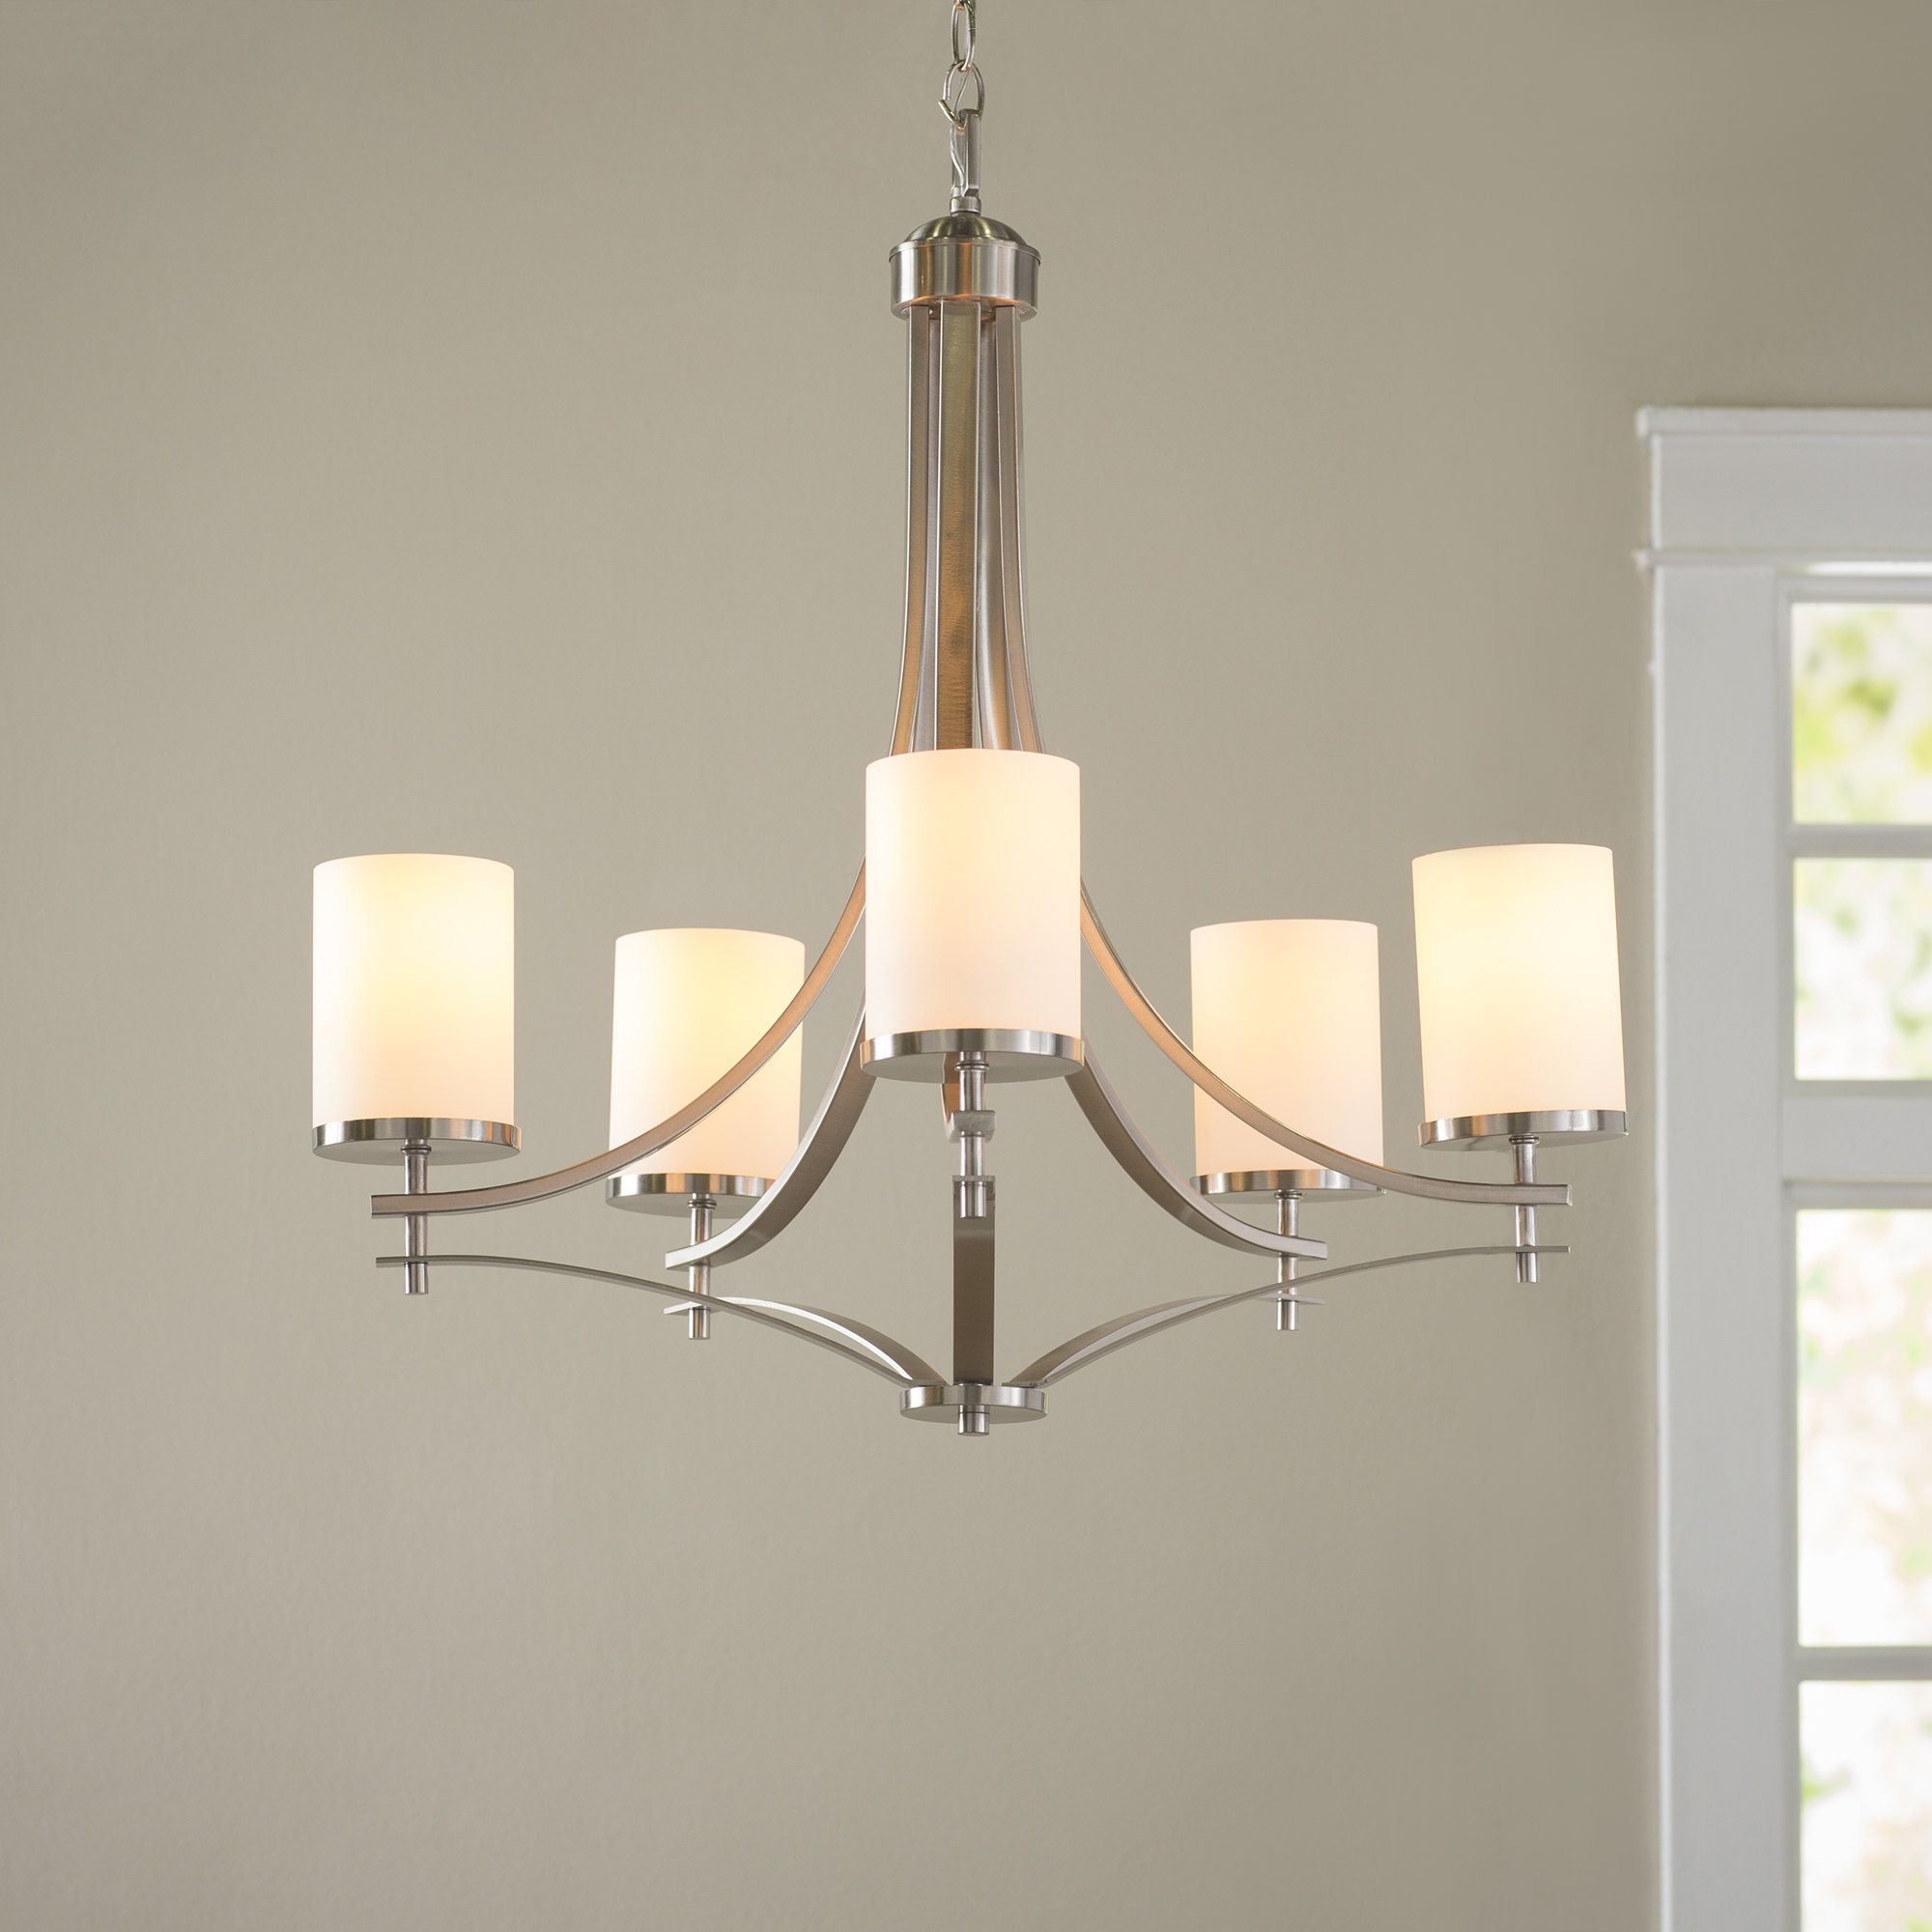 Agnes 5 Light Shaded Chandelier Pertaining To Suki 5 Light Shaded Chandeliers (View 1 of 30)